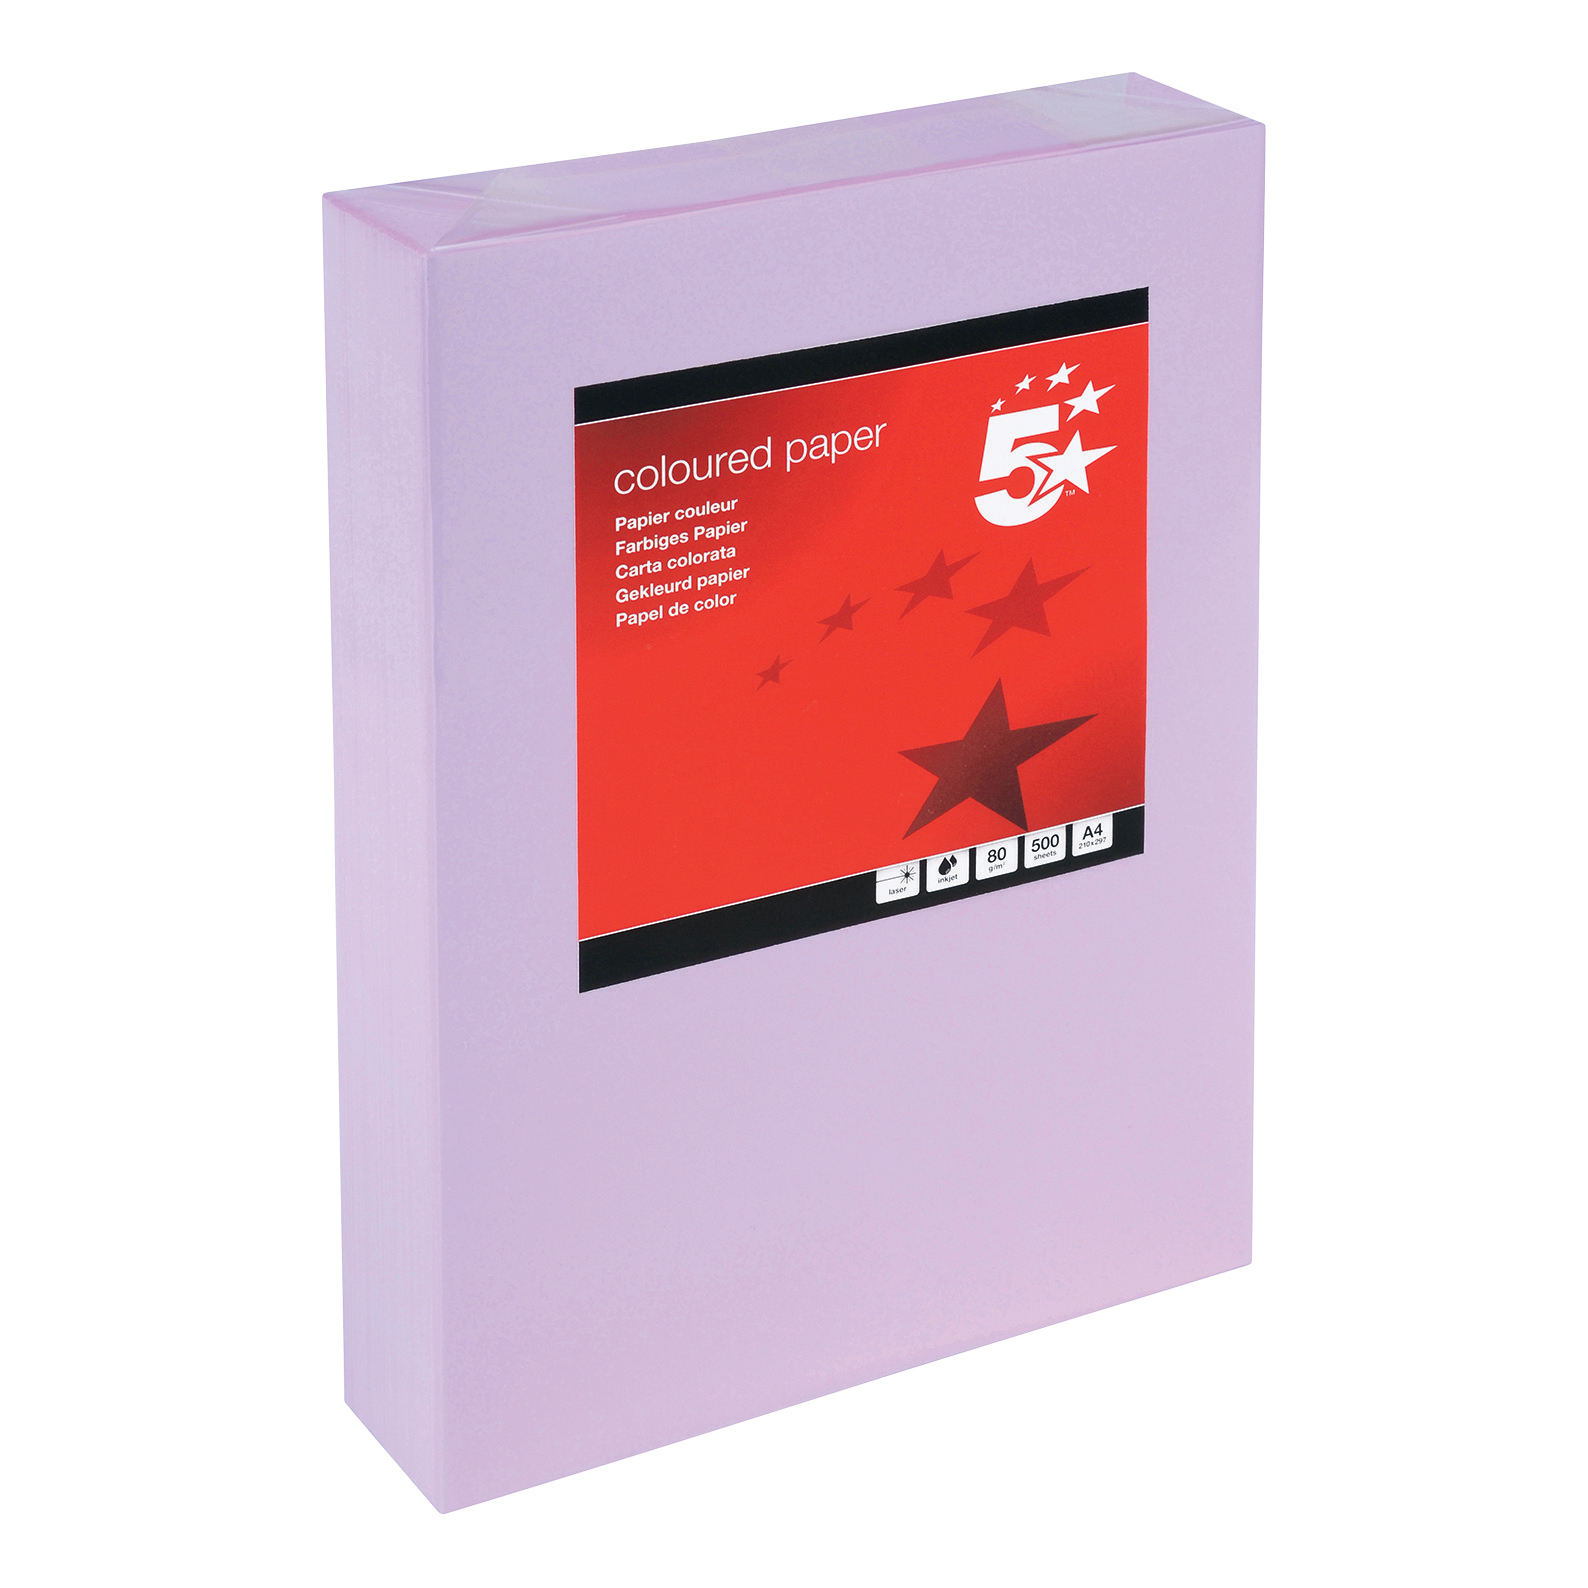 5 Star Office Coloured Copier Paper Multifunctional Ream-Wrapped 80gsm A4 Medium Violet [500 Sheets]